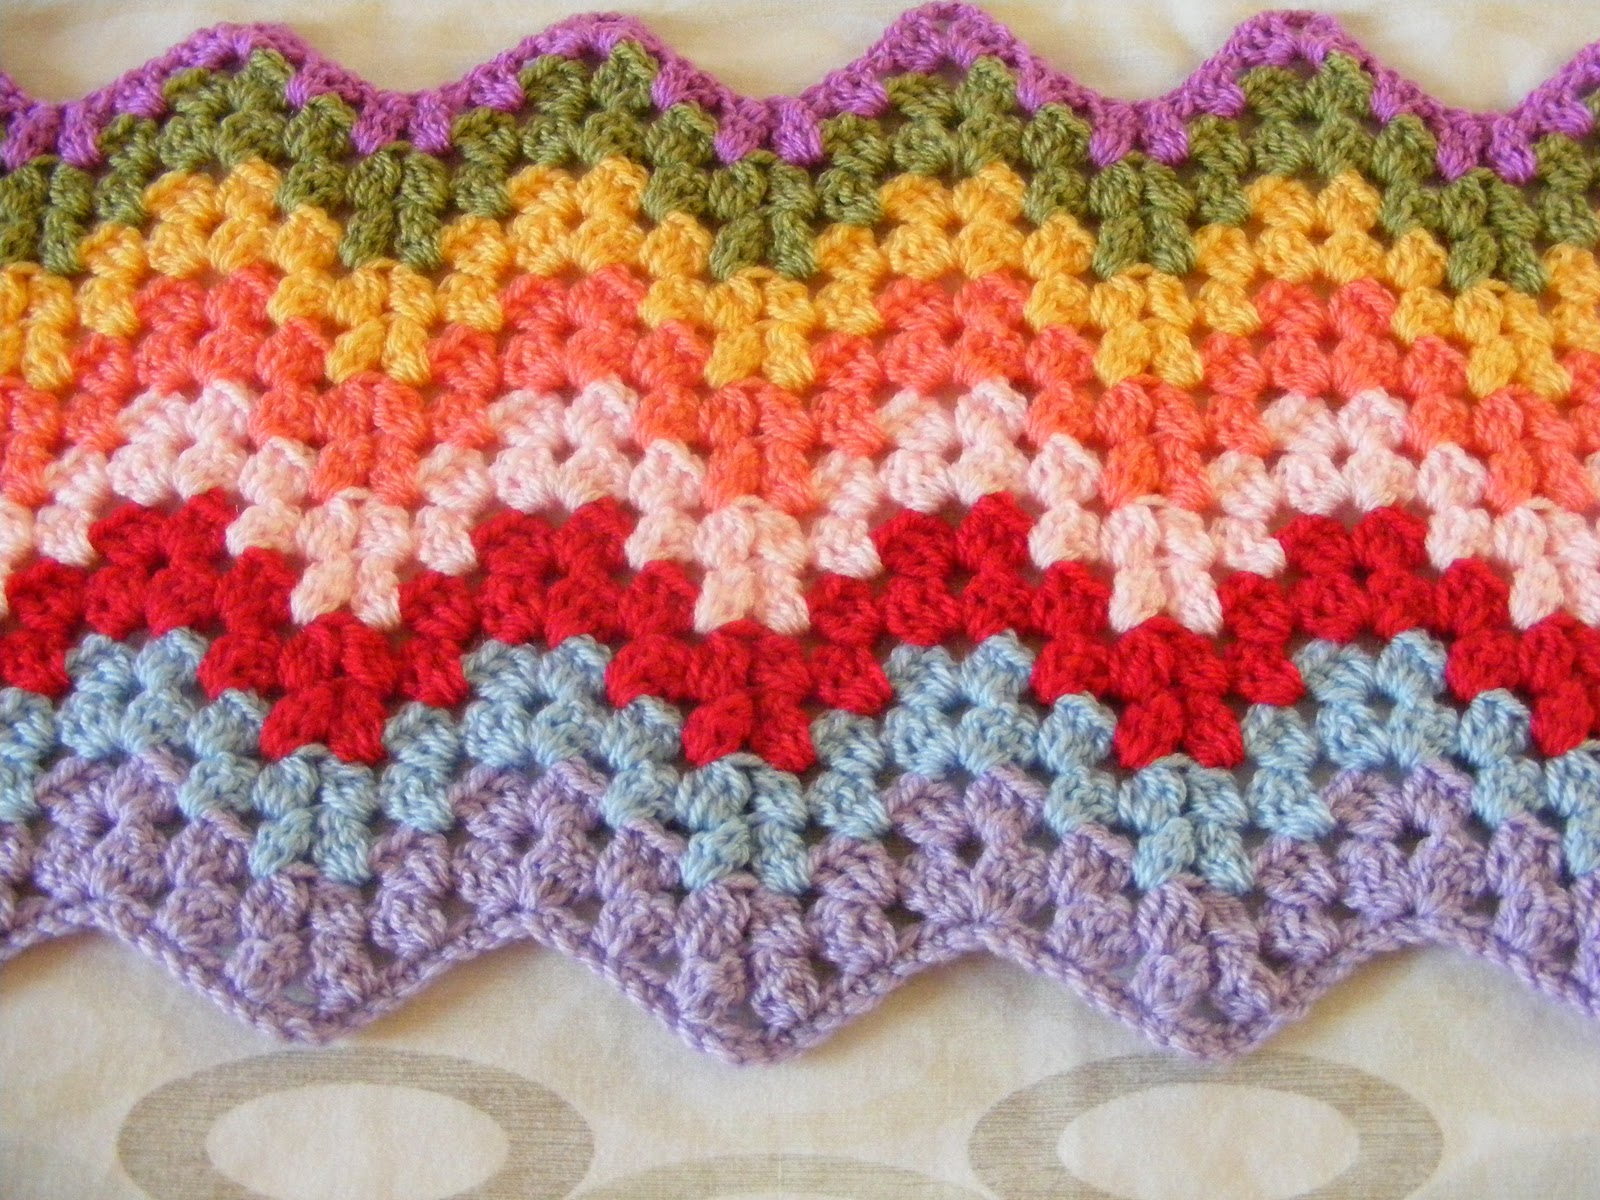 Crochet Patterns Ripple : Next it was time to take the plunge, and do it for real.